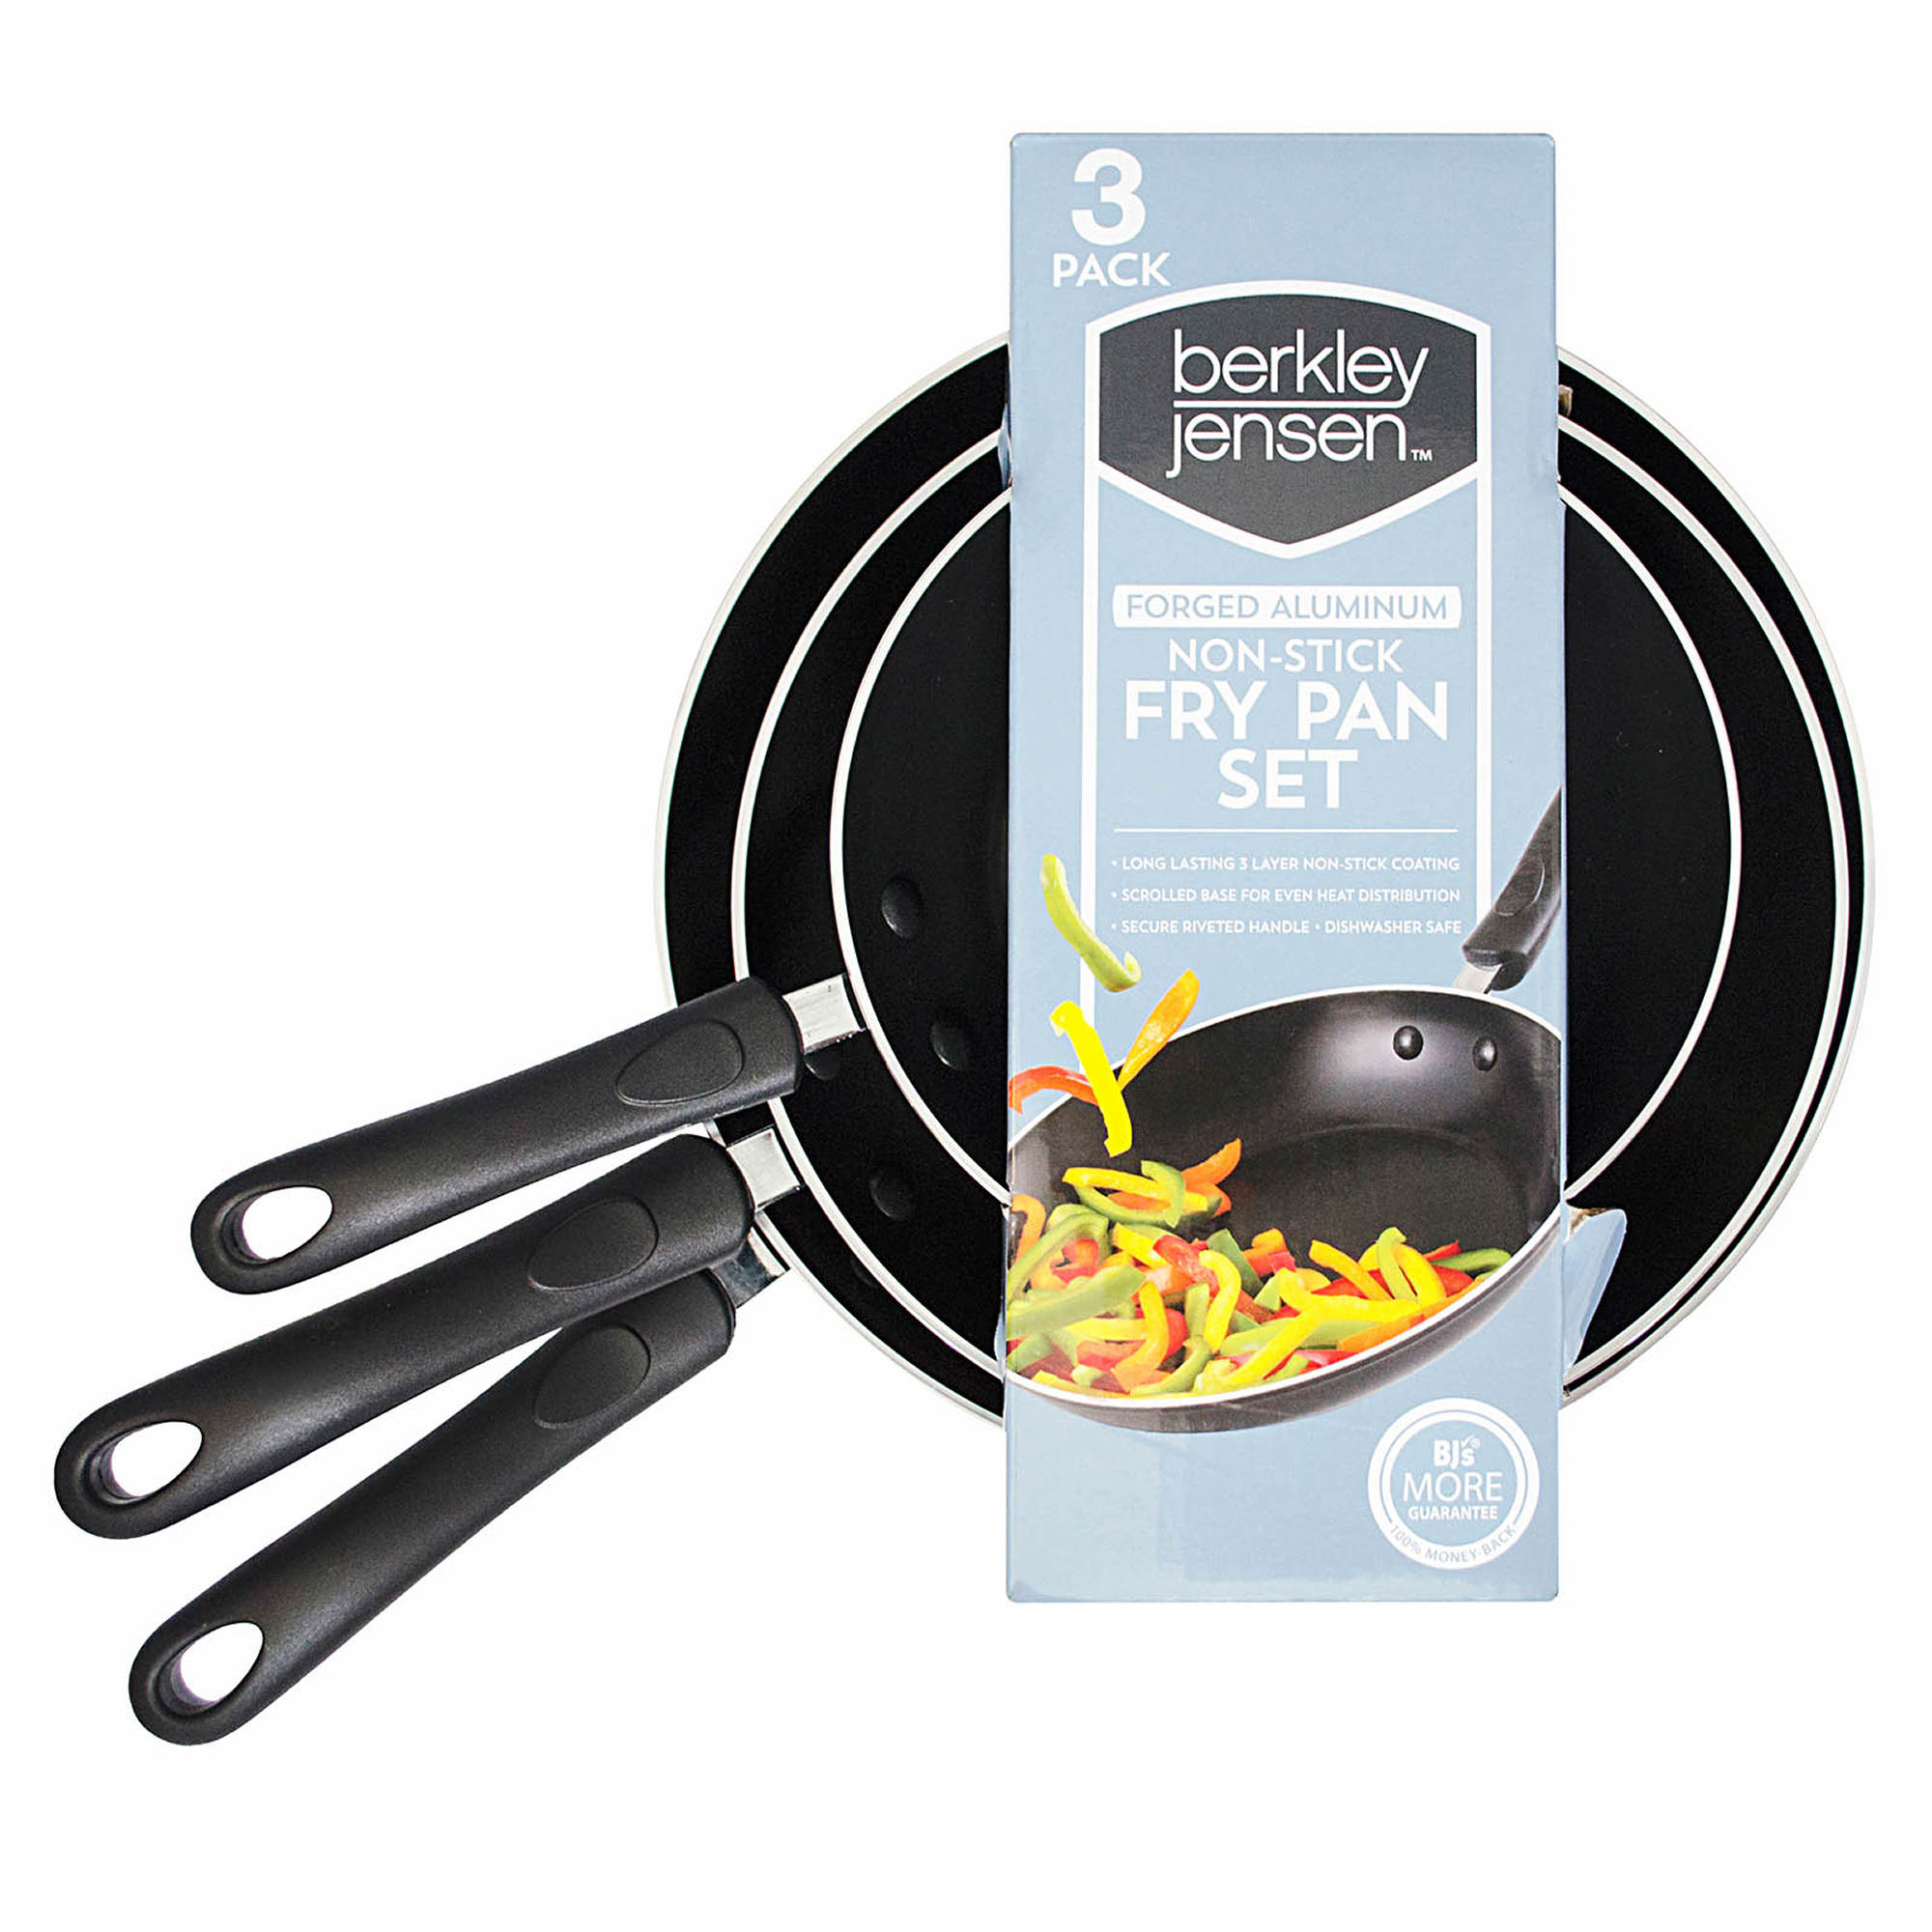 Berkley Jensen 3-Pc. Aluminum Fry Pan Set